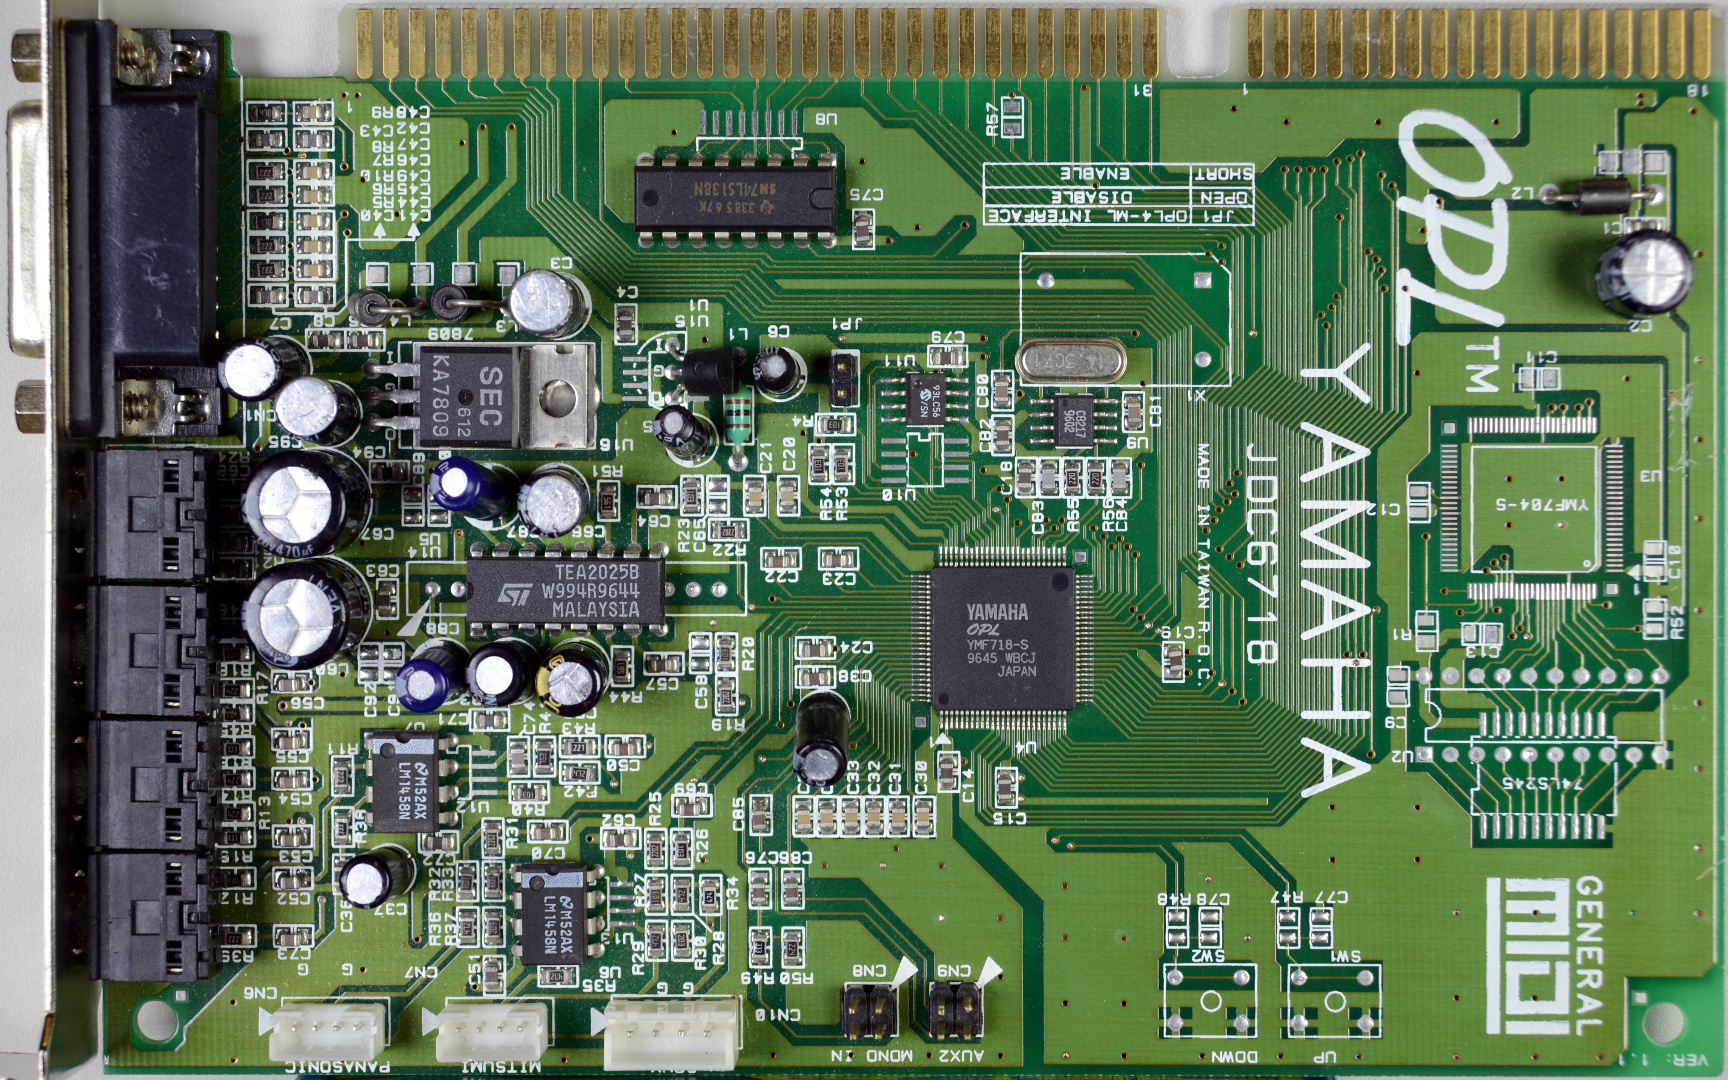 Pc Audio For Luddites Pci Sound Card 4 Channel With Game Port Yamaha Opl3 Sa3 Pnp